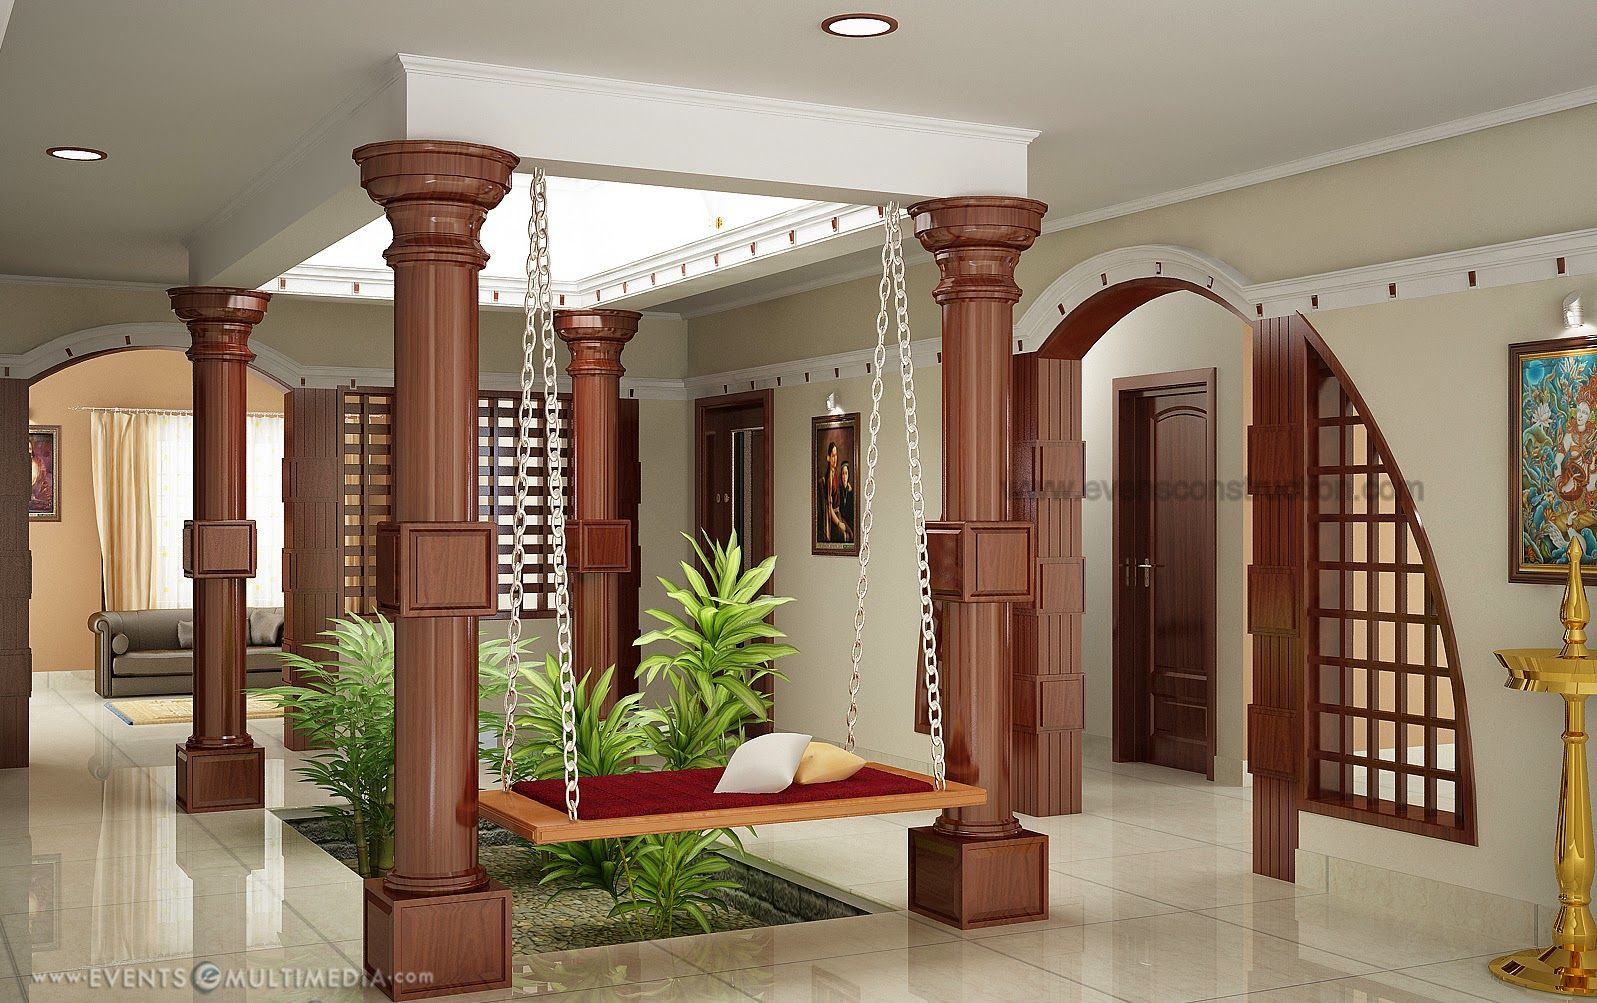 Courtyard For Kerala House Indian Home Design Kerala House Design Indian Home Interior